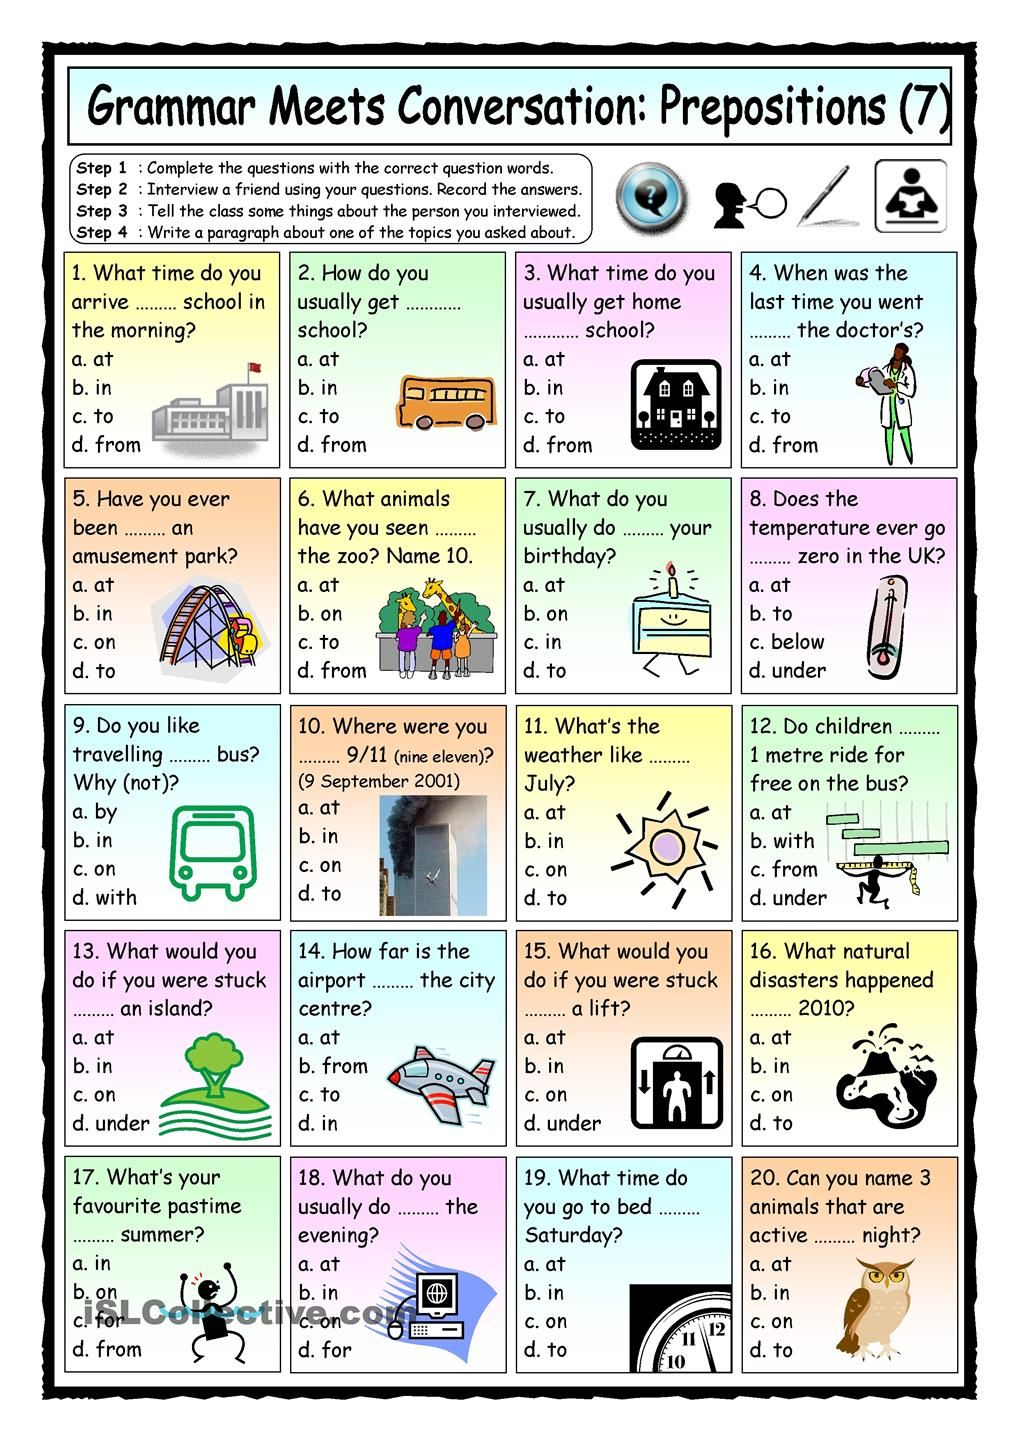 small resolution of Grammar Meets Conversation: Prepositions (7) - Asking Questions   Learn  english